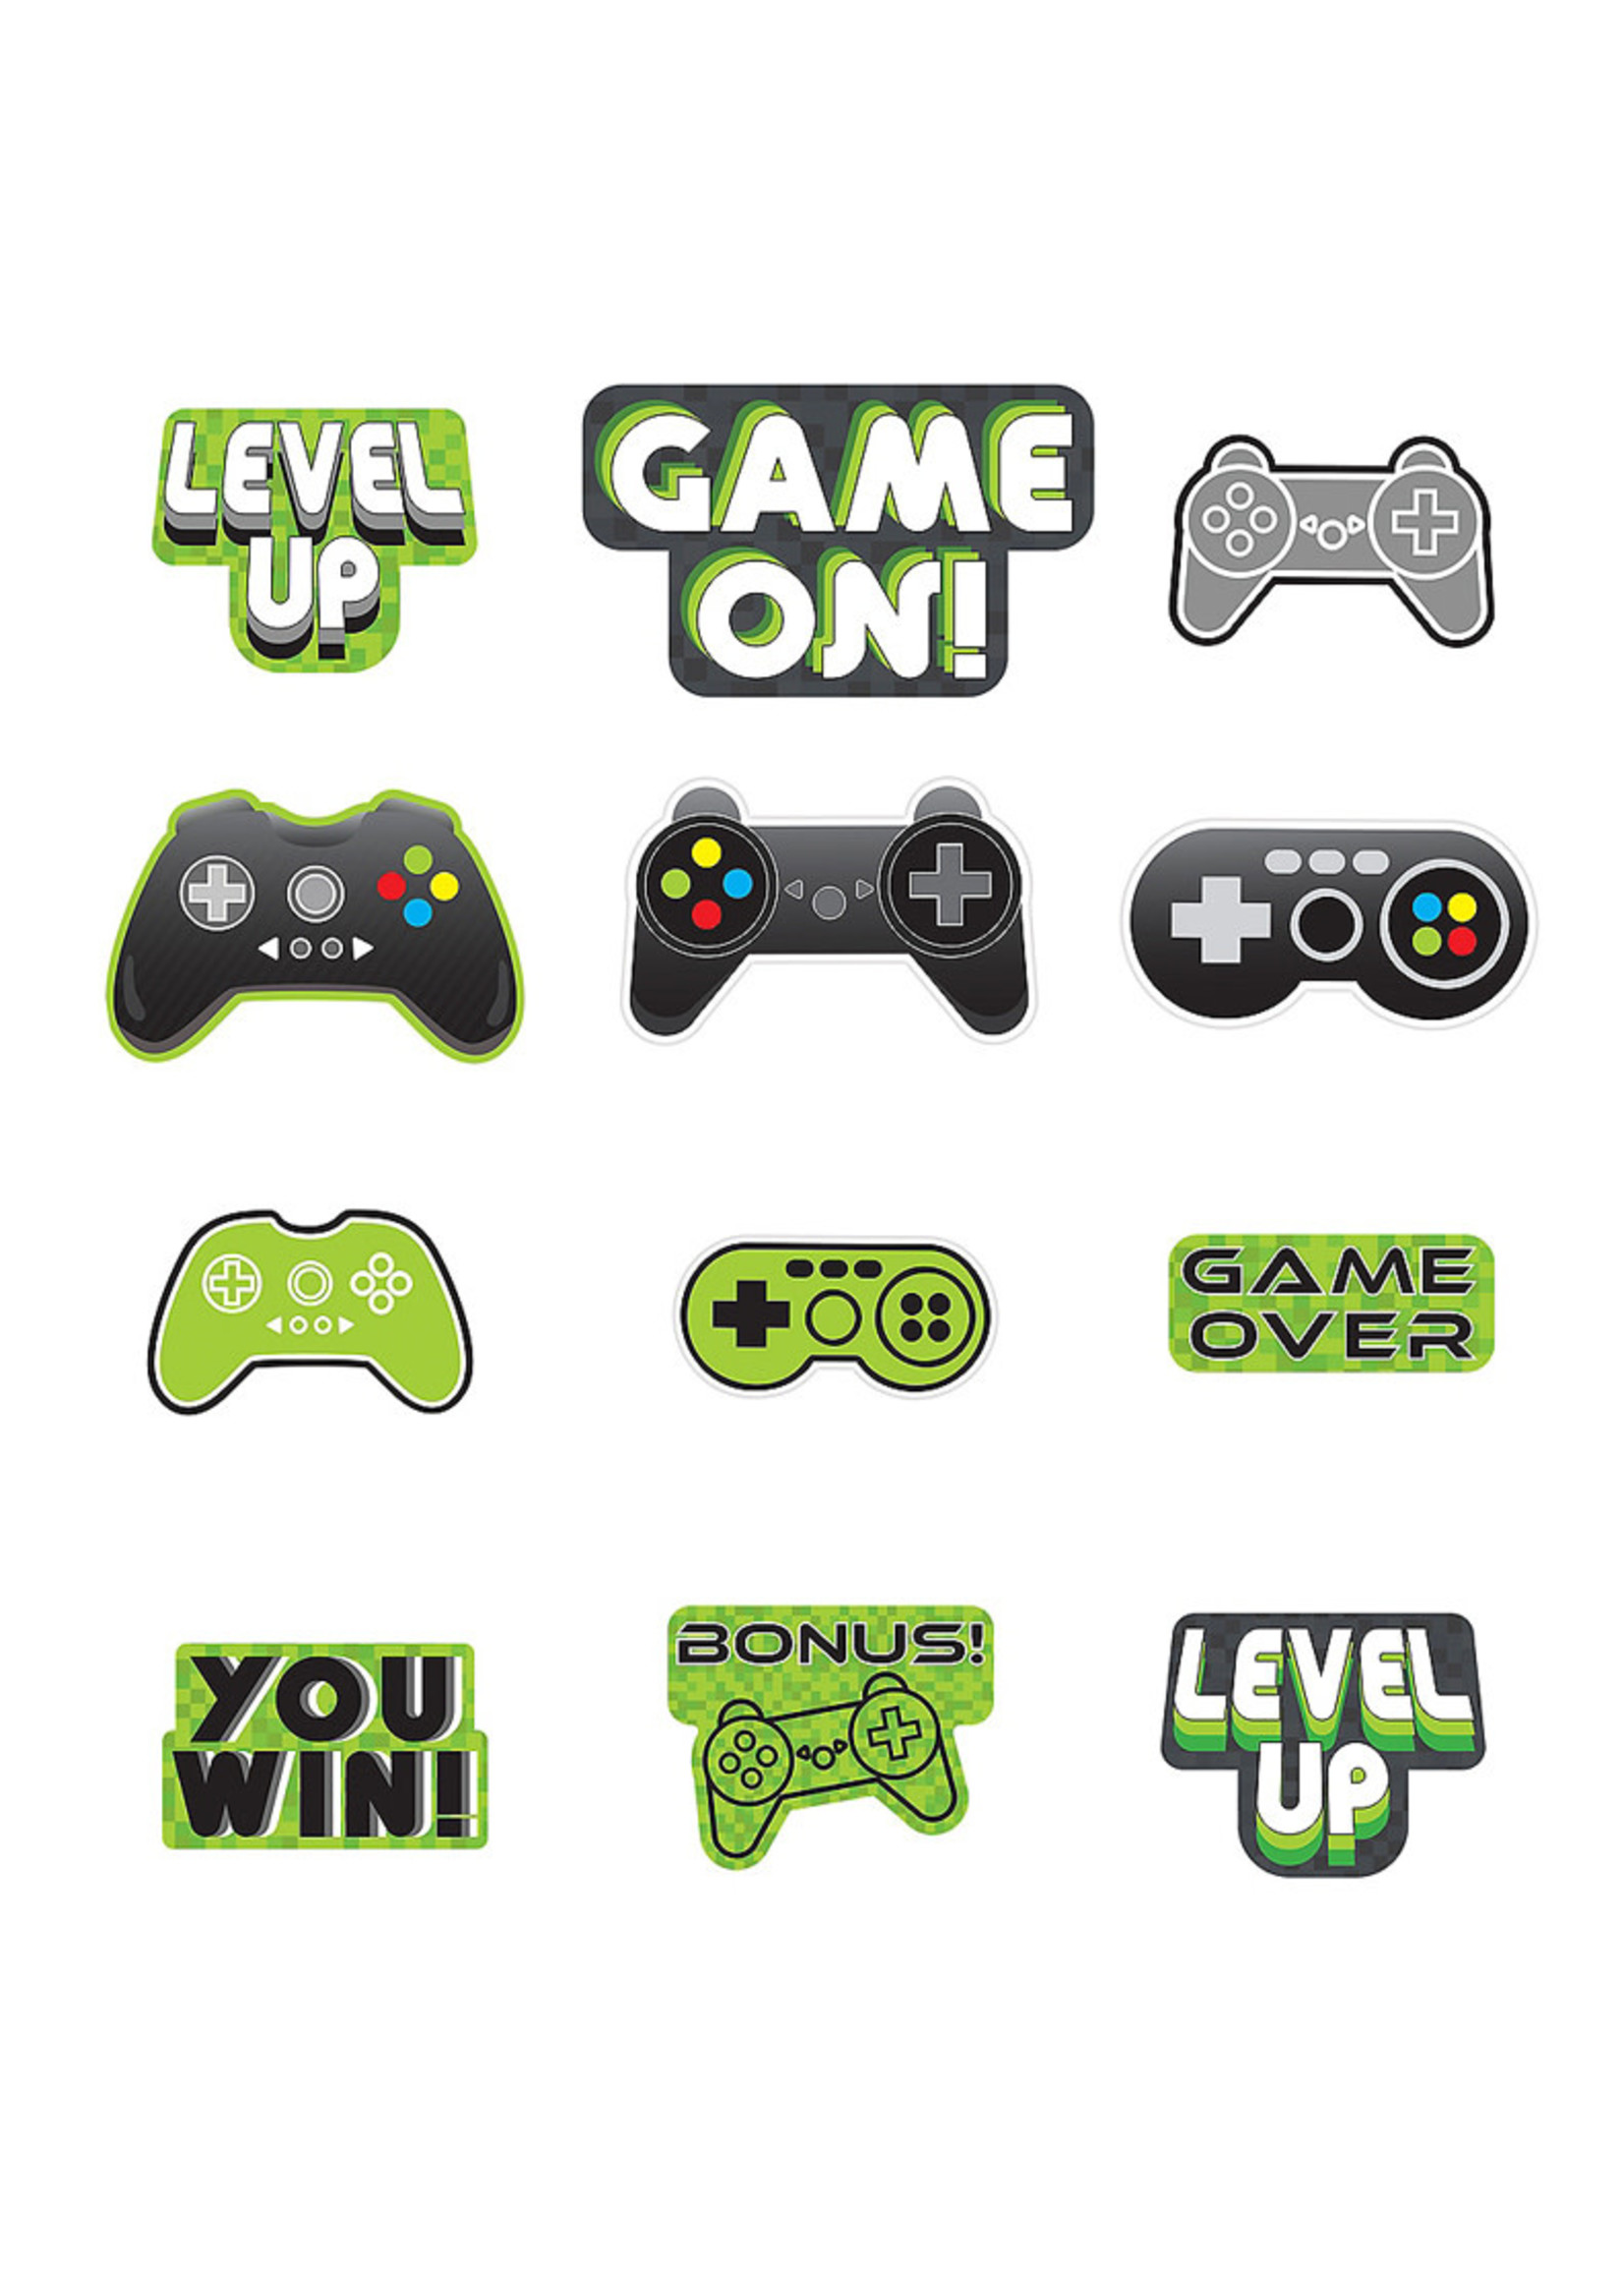 Level Up Cardstock Cutouts 12ct